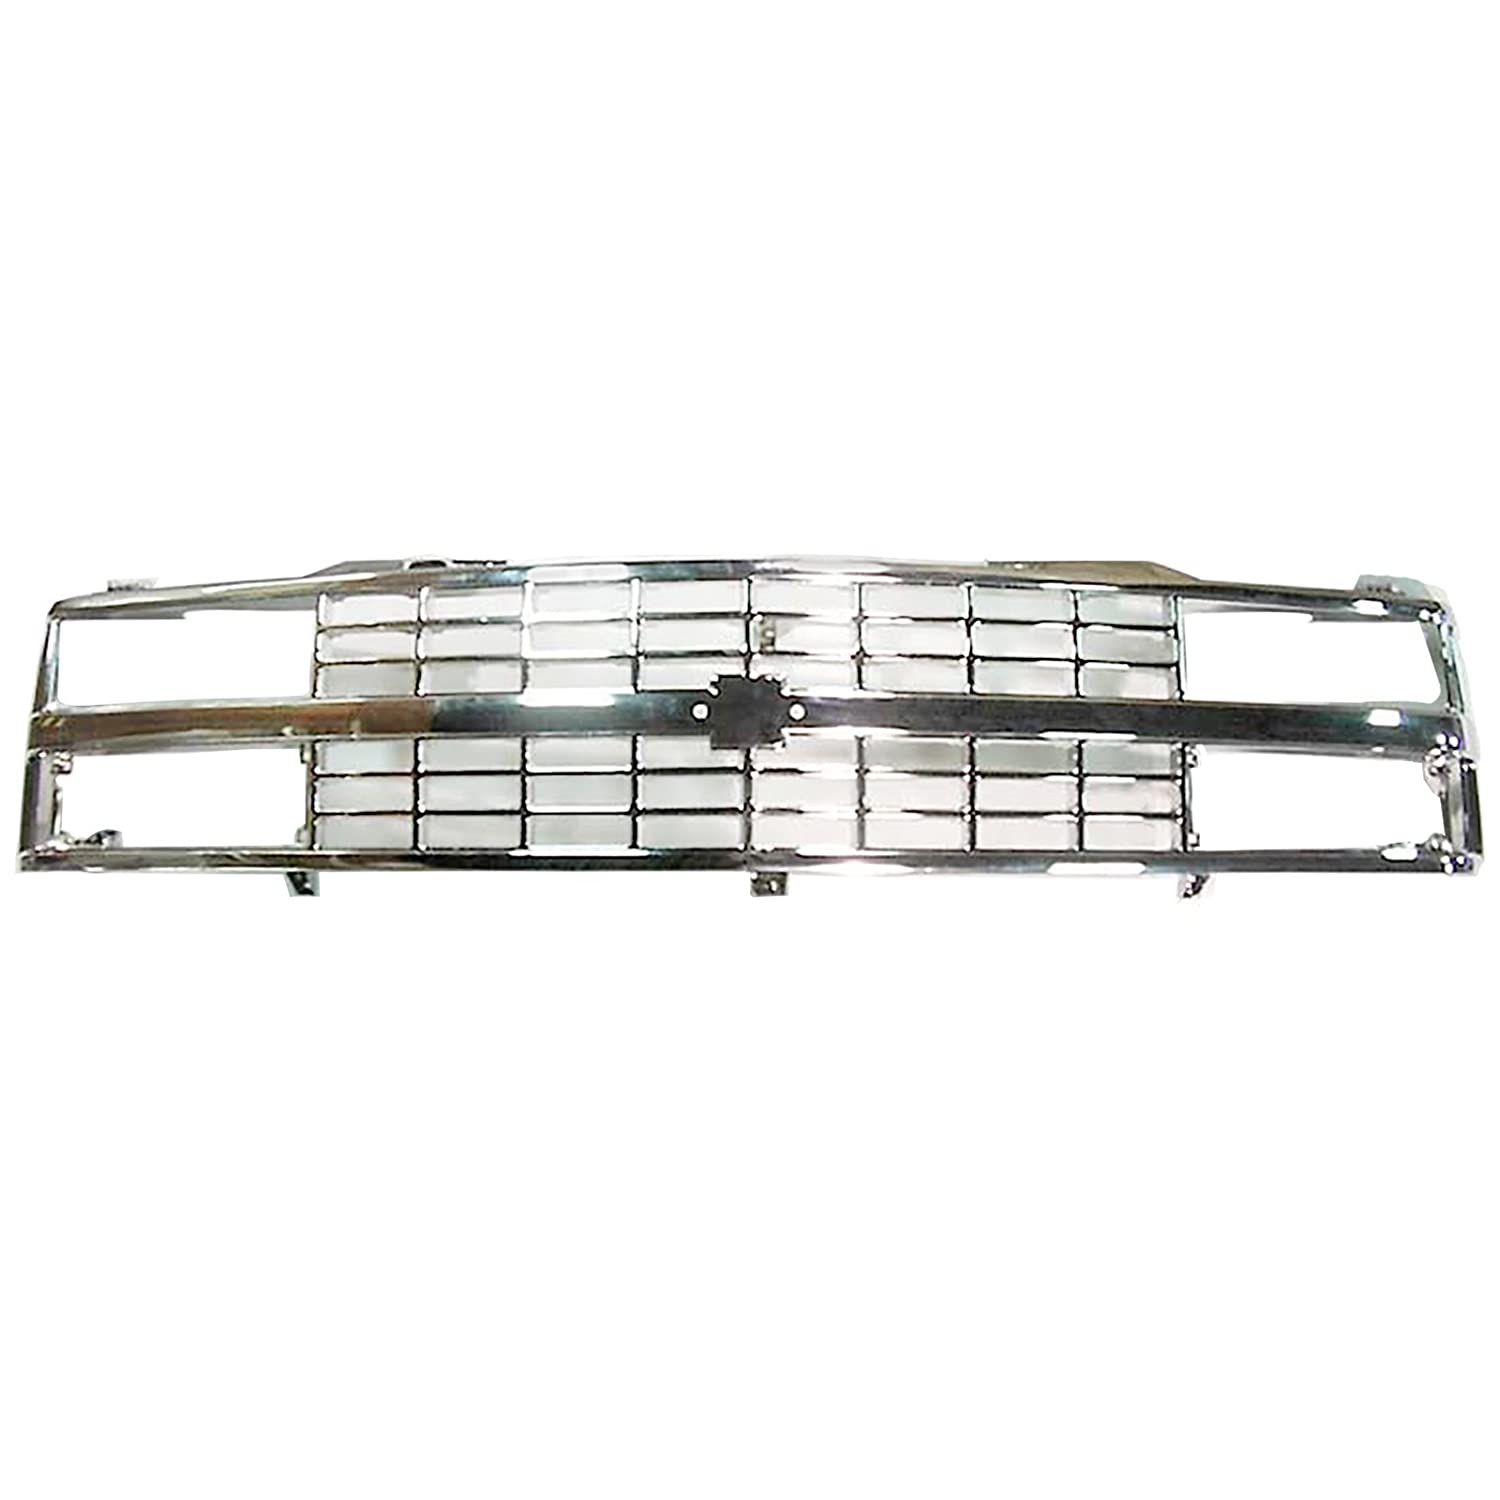 Grille Grill All Chrome Front End for Chevy Blazer 1500 2500 3500 Pickup Truck